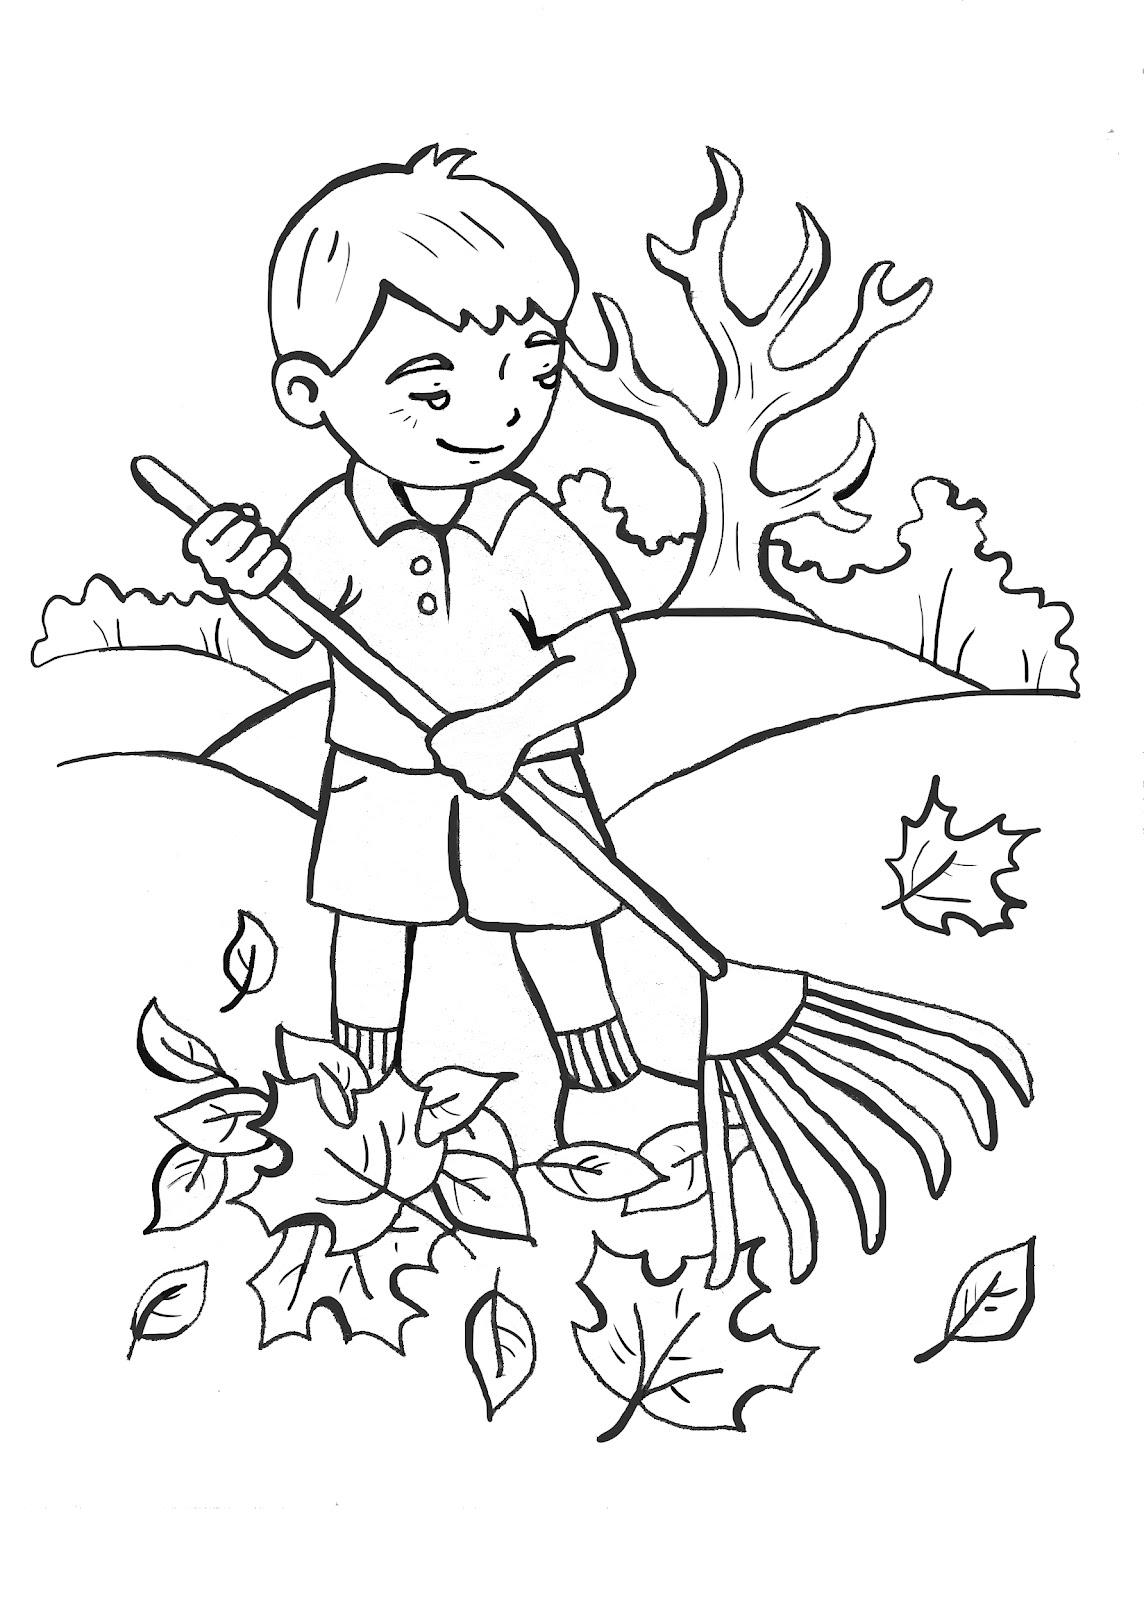 Picture Lds Coloring Pages 67 For Free Coloring Book With Lds